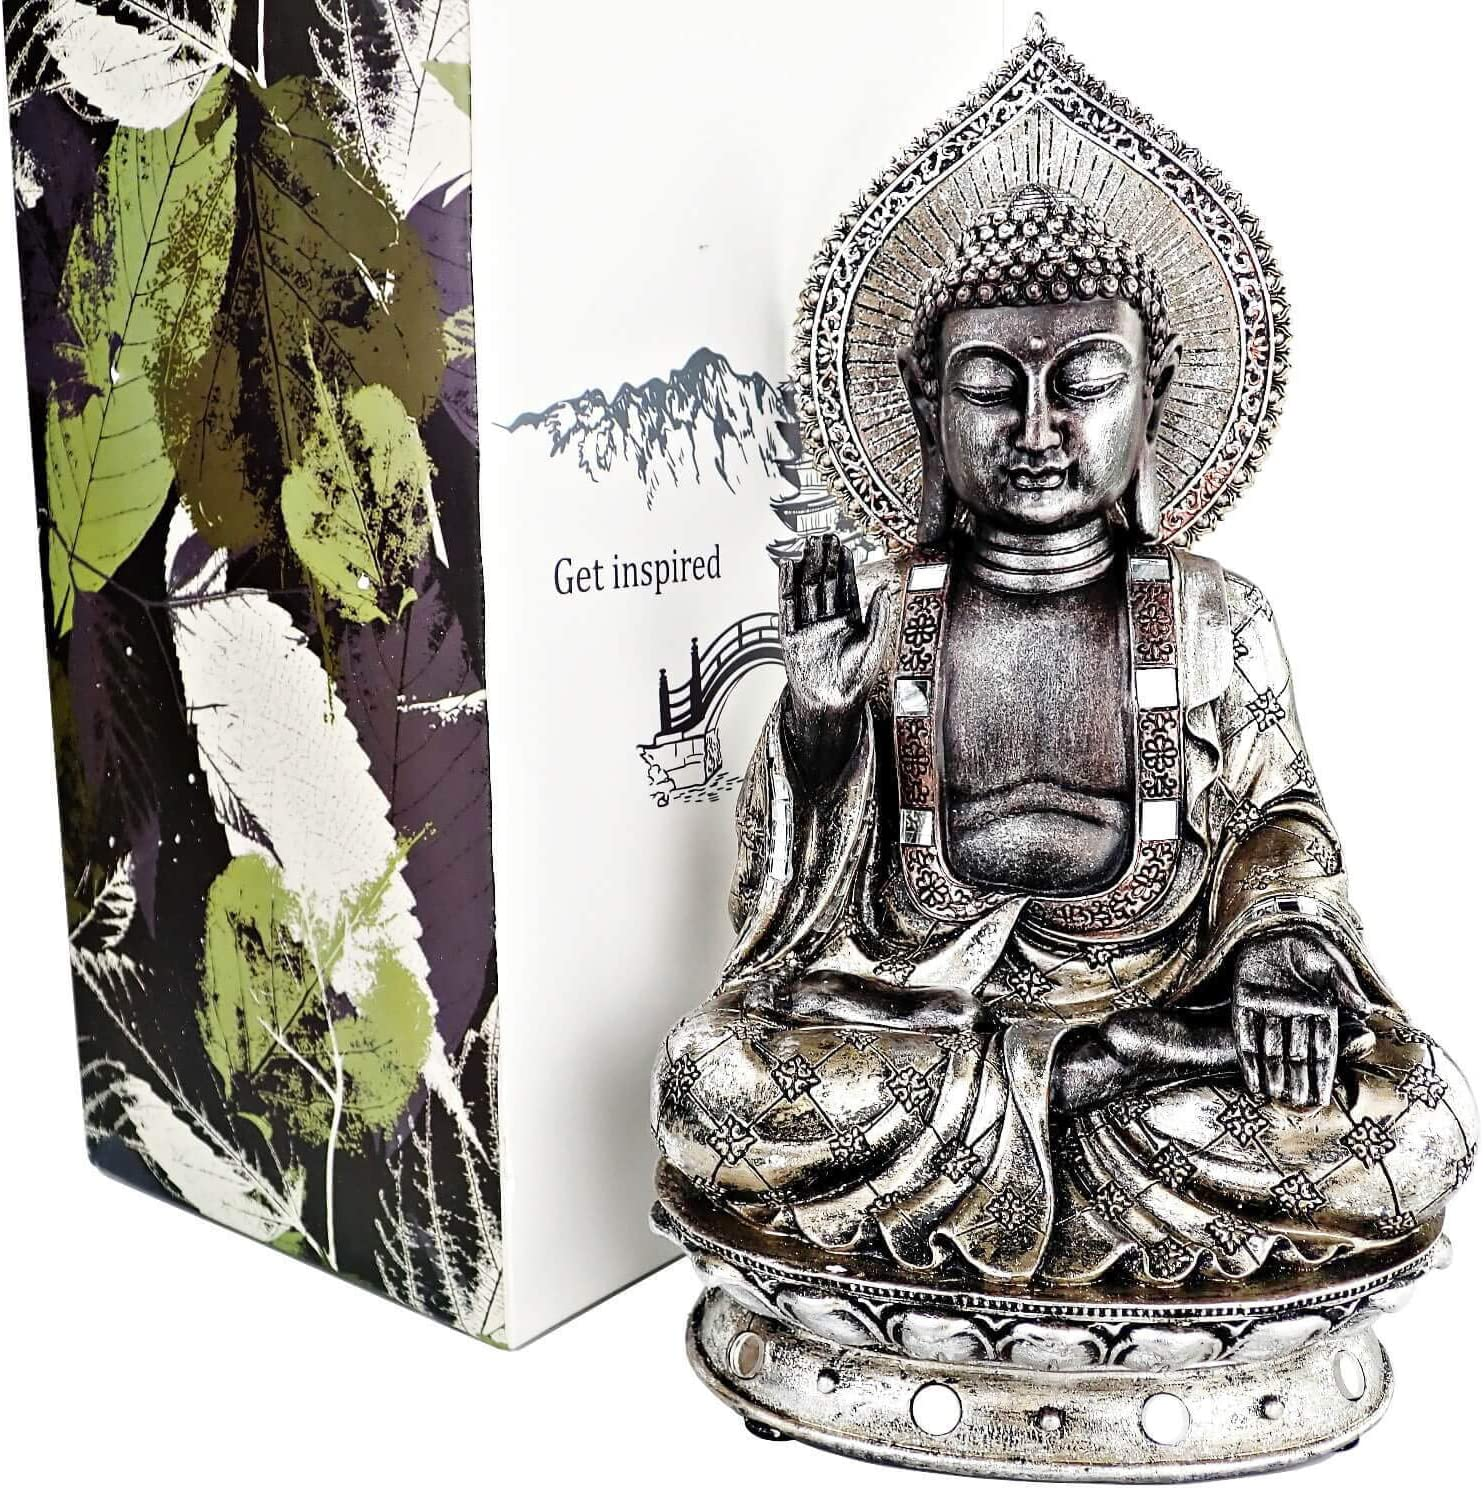 "25DOL Buddha Statues for Home. 8.7"" Buddha Statue (The Enlightened One). Collectibles and Figurines, Meditation Decor, Spiritual Living Room Decor, Yoga Zen Decor, Hindu and East Asian Décor"